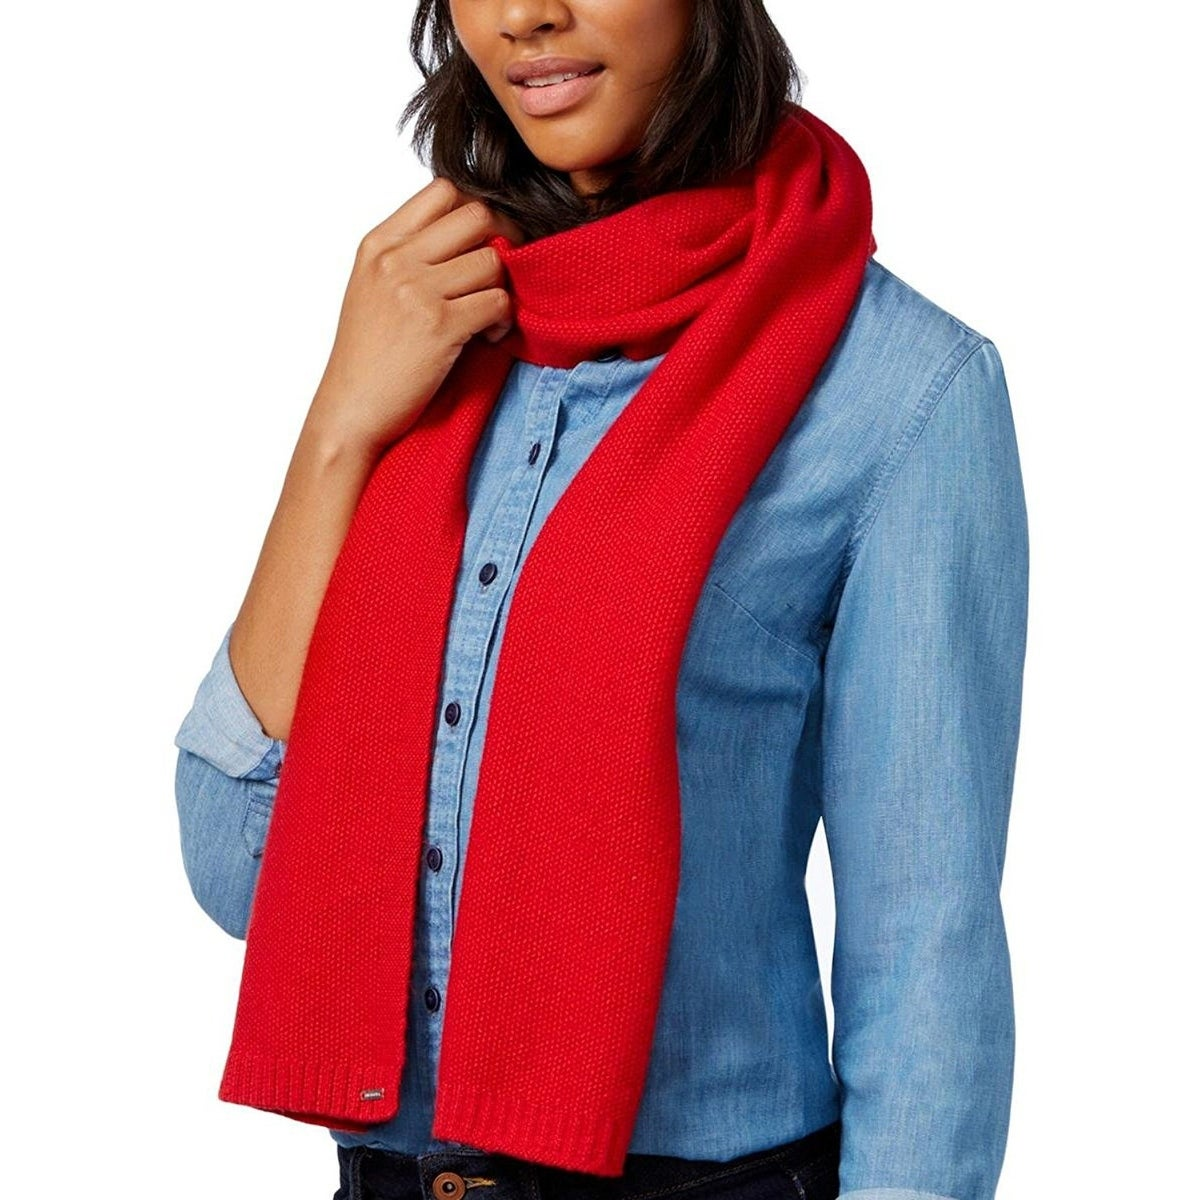 41caea739e56 Shop Tommy Hilfiger Heidi Knit Scarf Chili Pepper - One size - Free  Shipping On Orders Over  45 - Overstock.com - 19894541